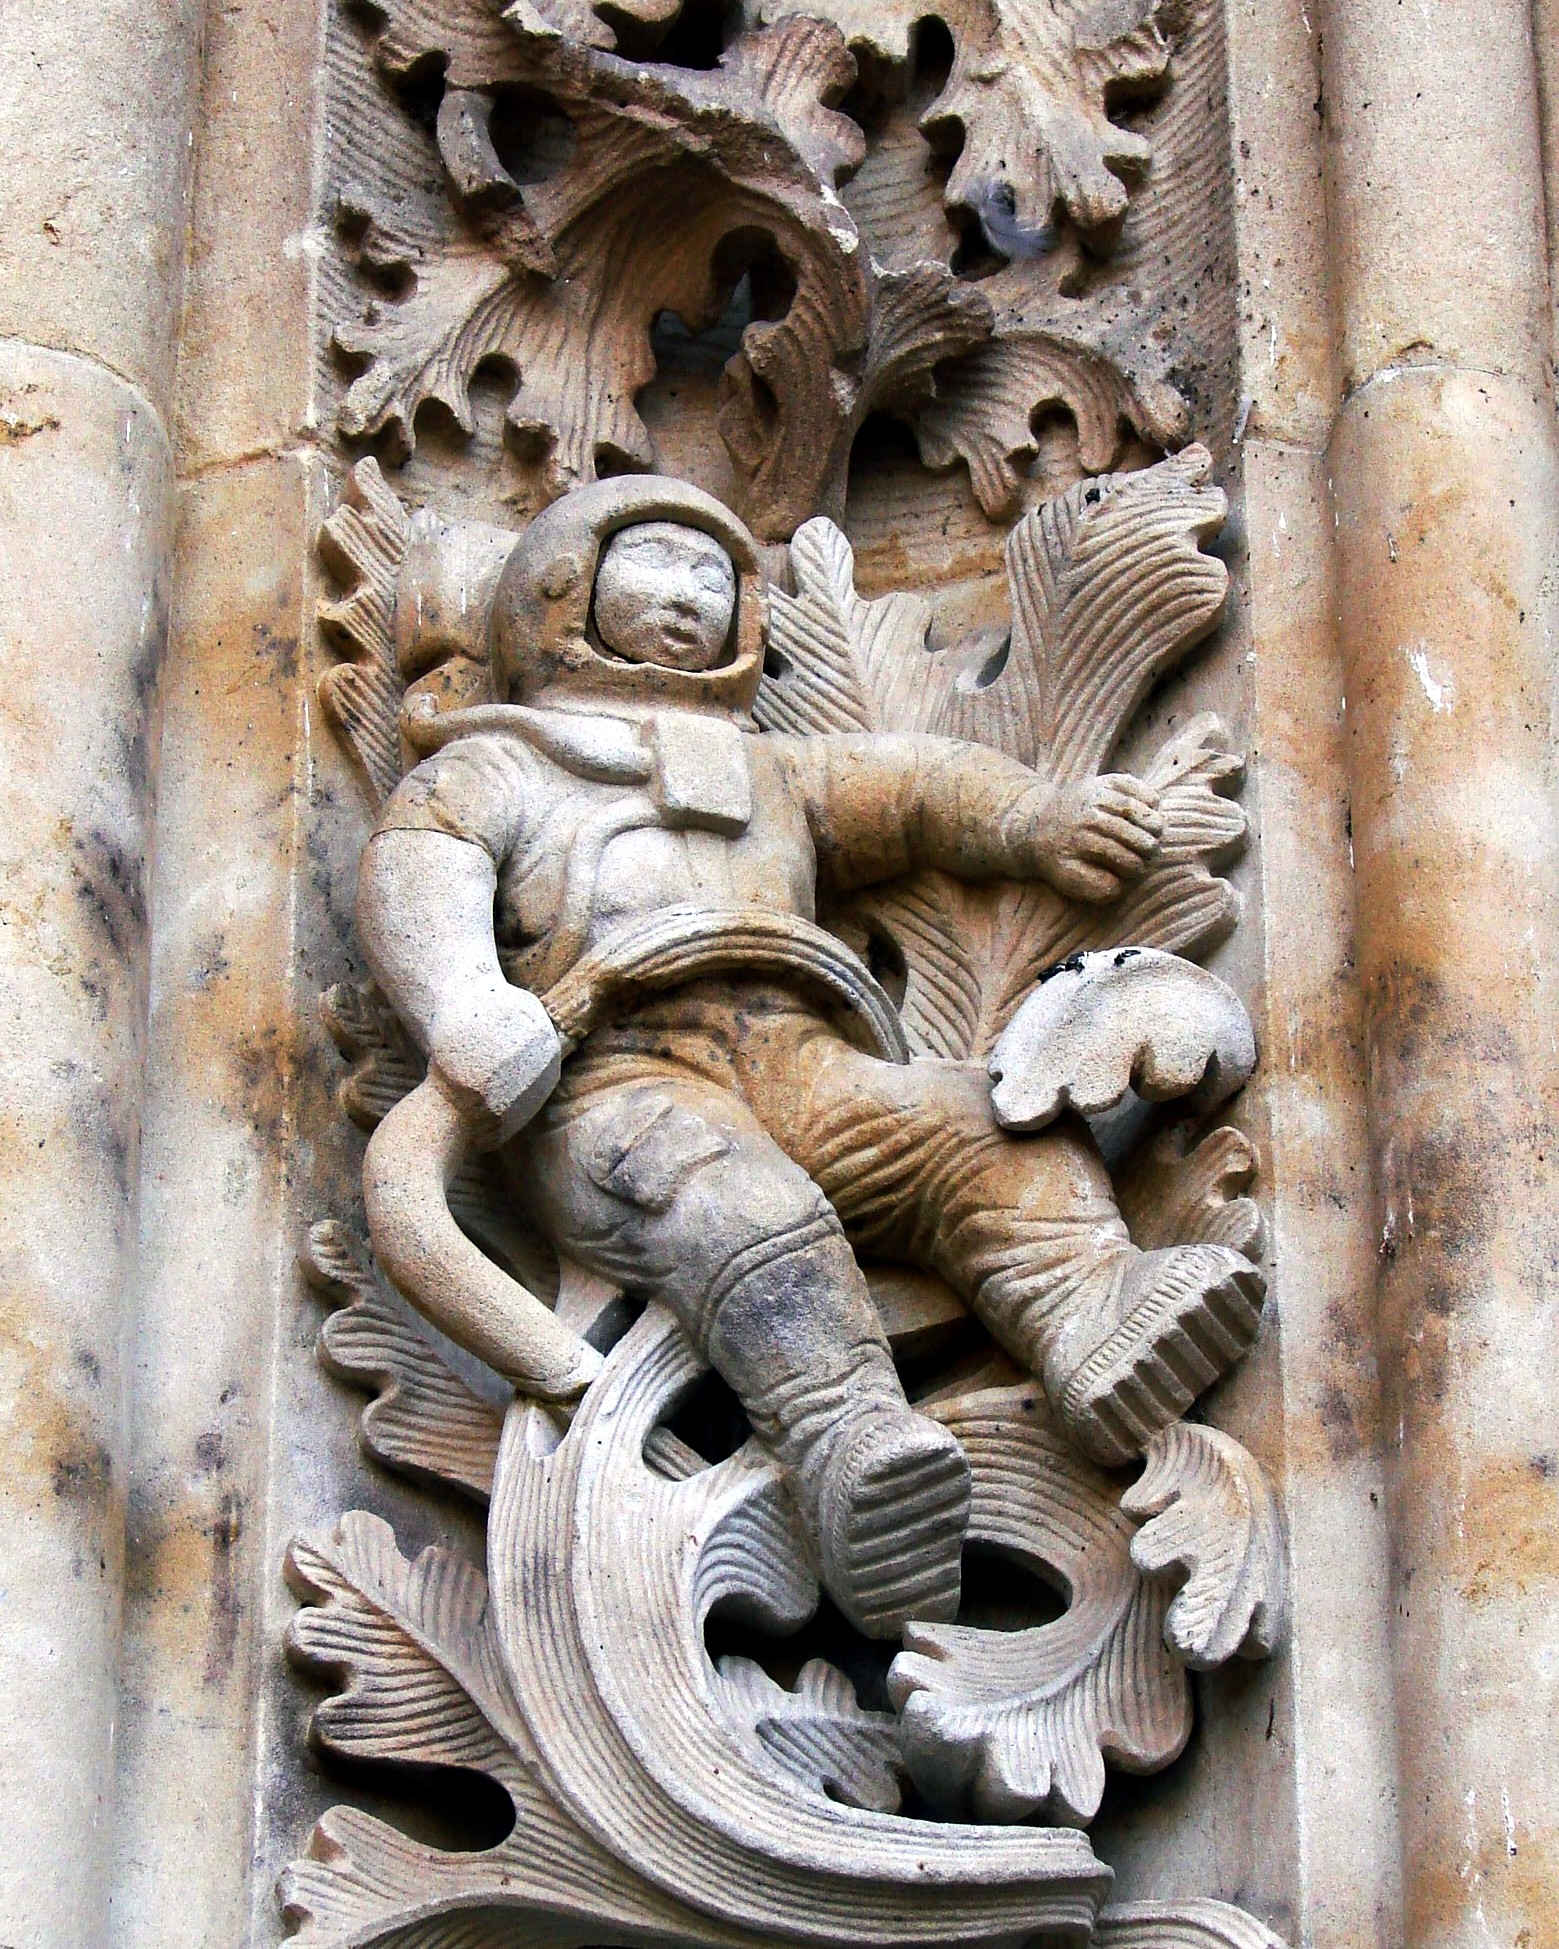 Not of This World:Peter Kolosimo-Sculpture_of_astronaut_added_to_New_Cathedral,_Salamanca,_Spain